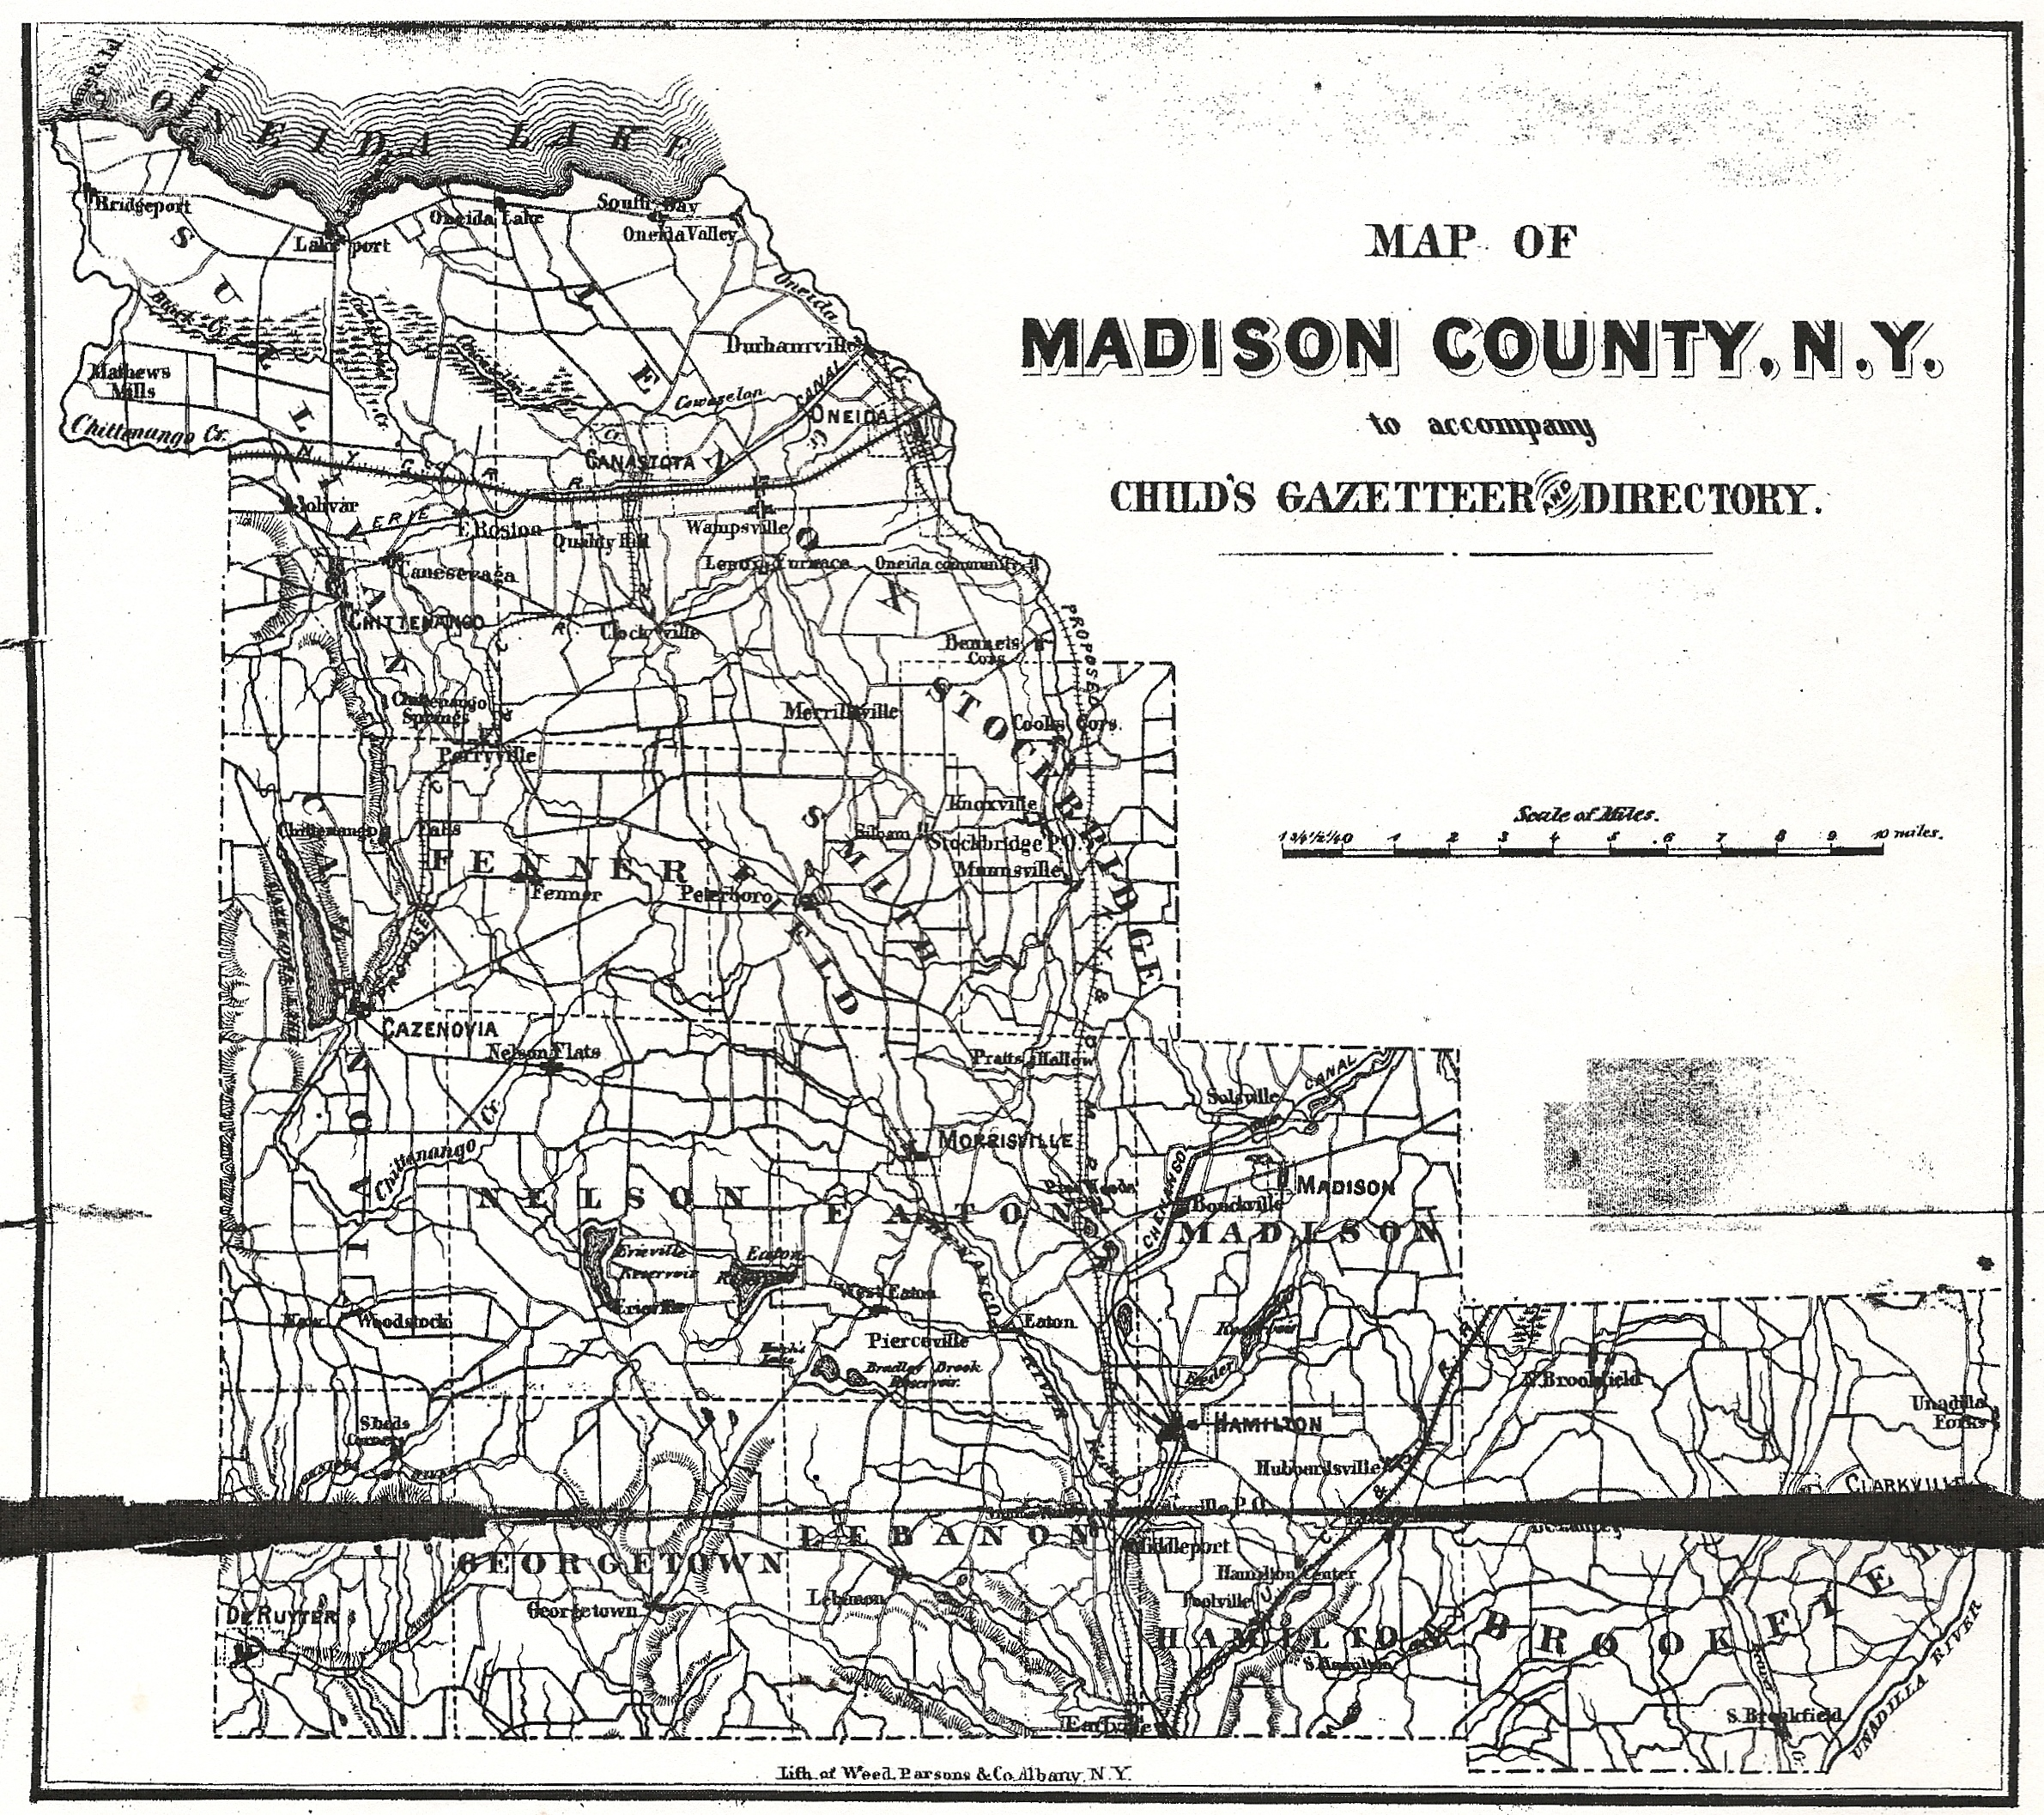 Maps of Madison County